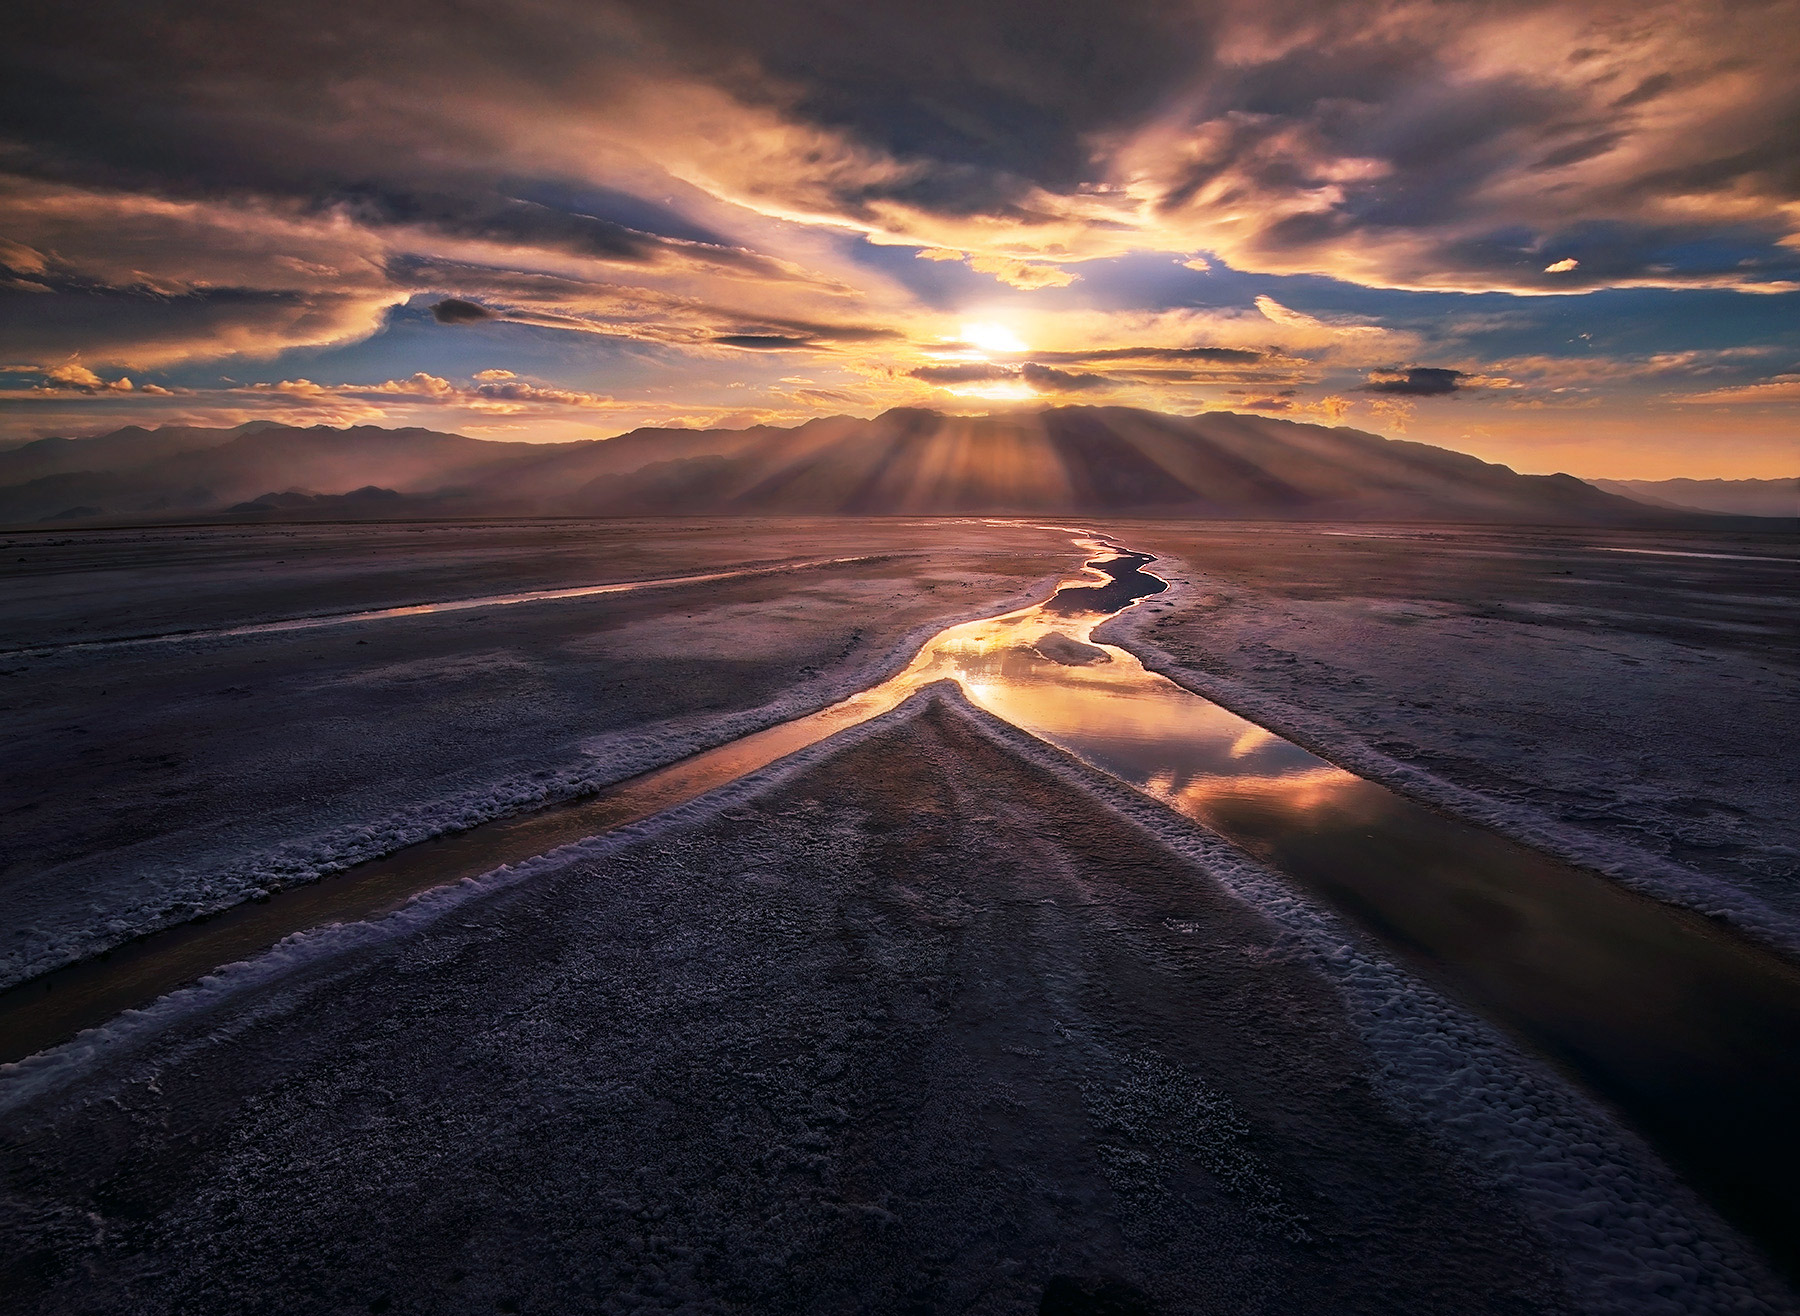 Death Valley, salt flats, stream, reflection, springs, beams, god beams, rays, sunset, photo